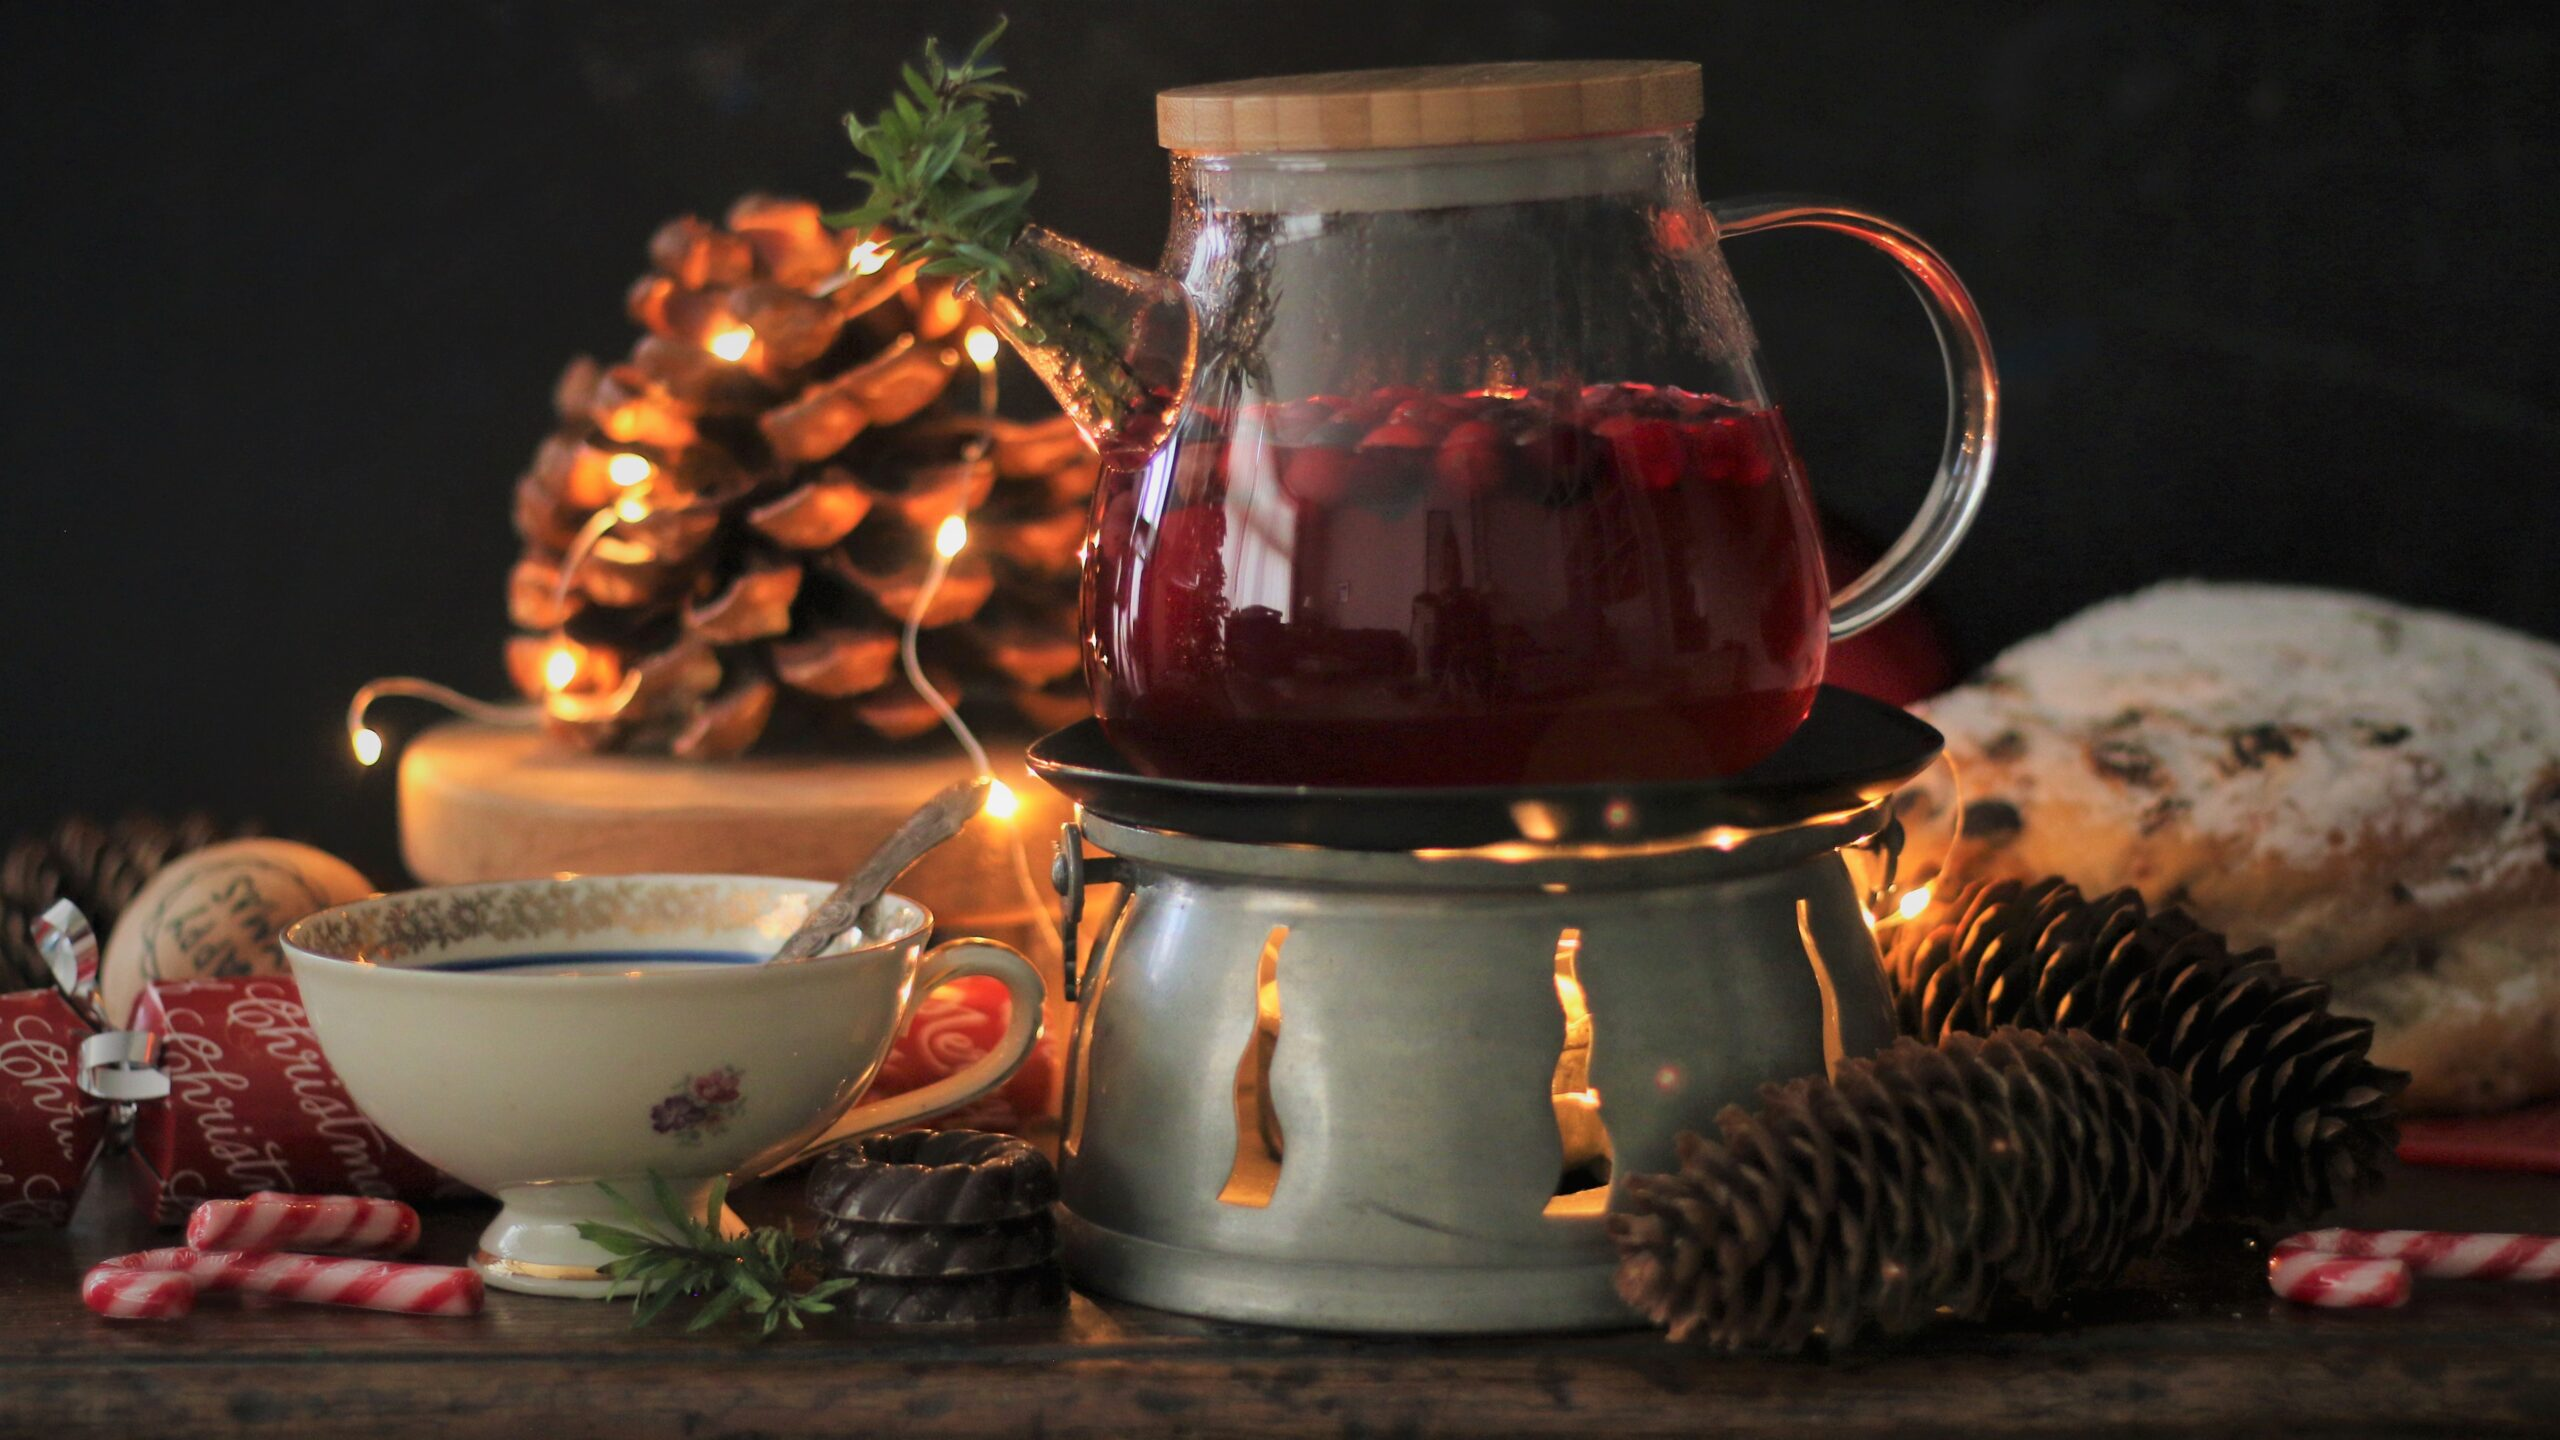 Cranberry hyssop thee